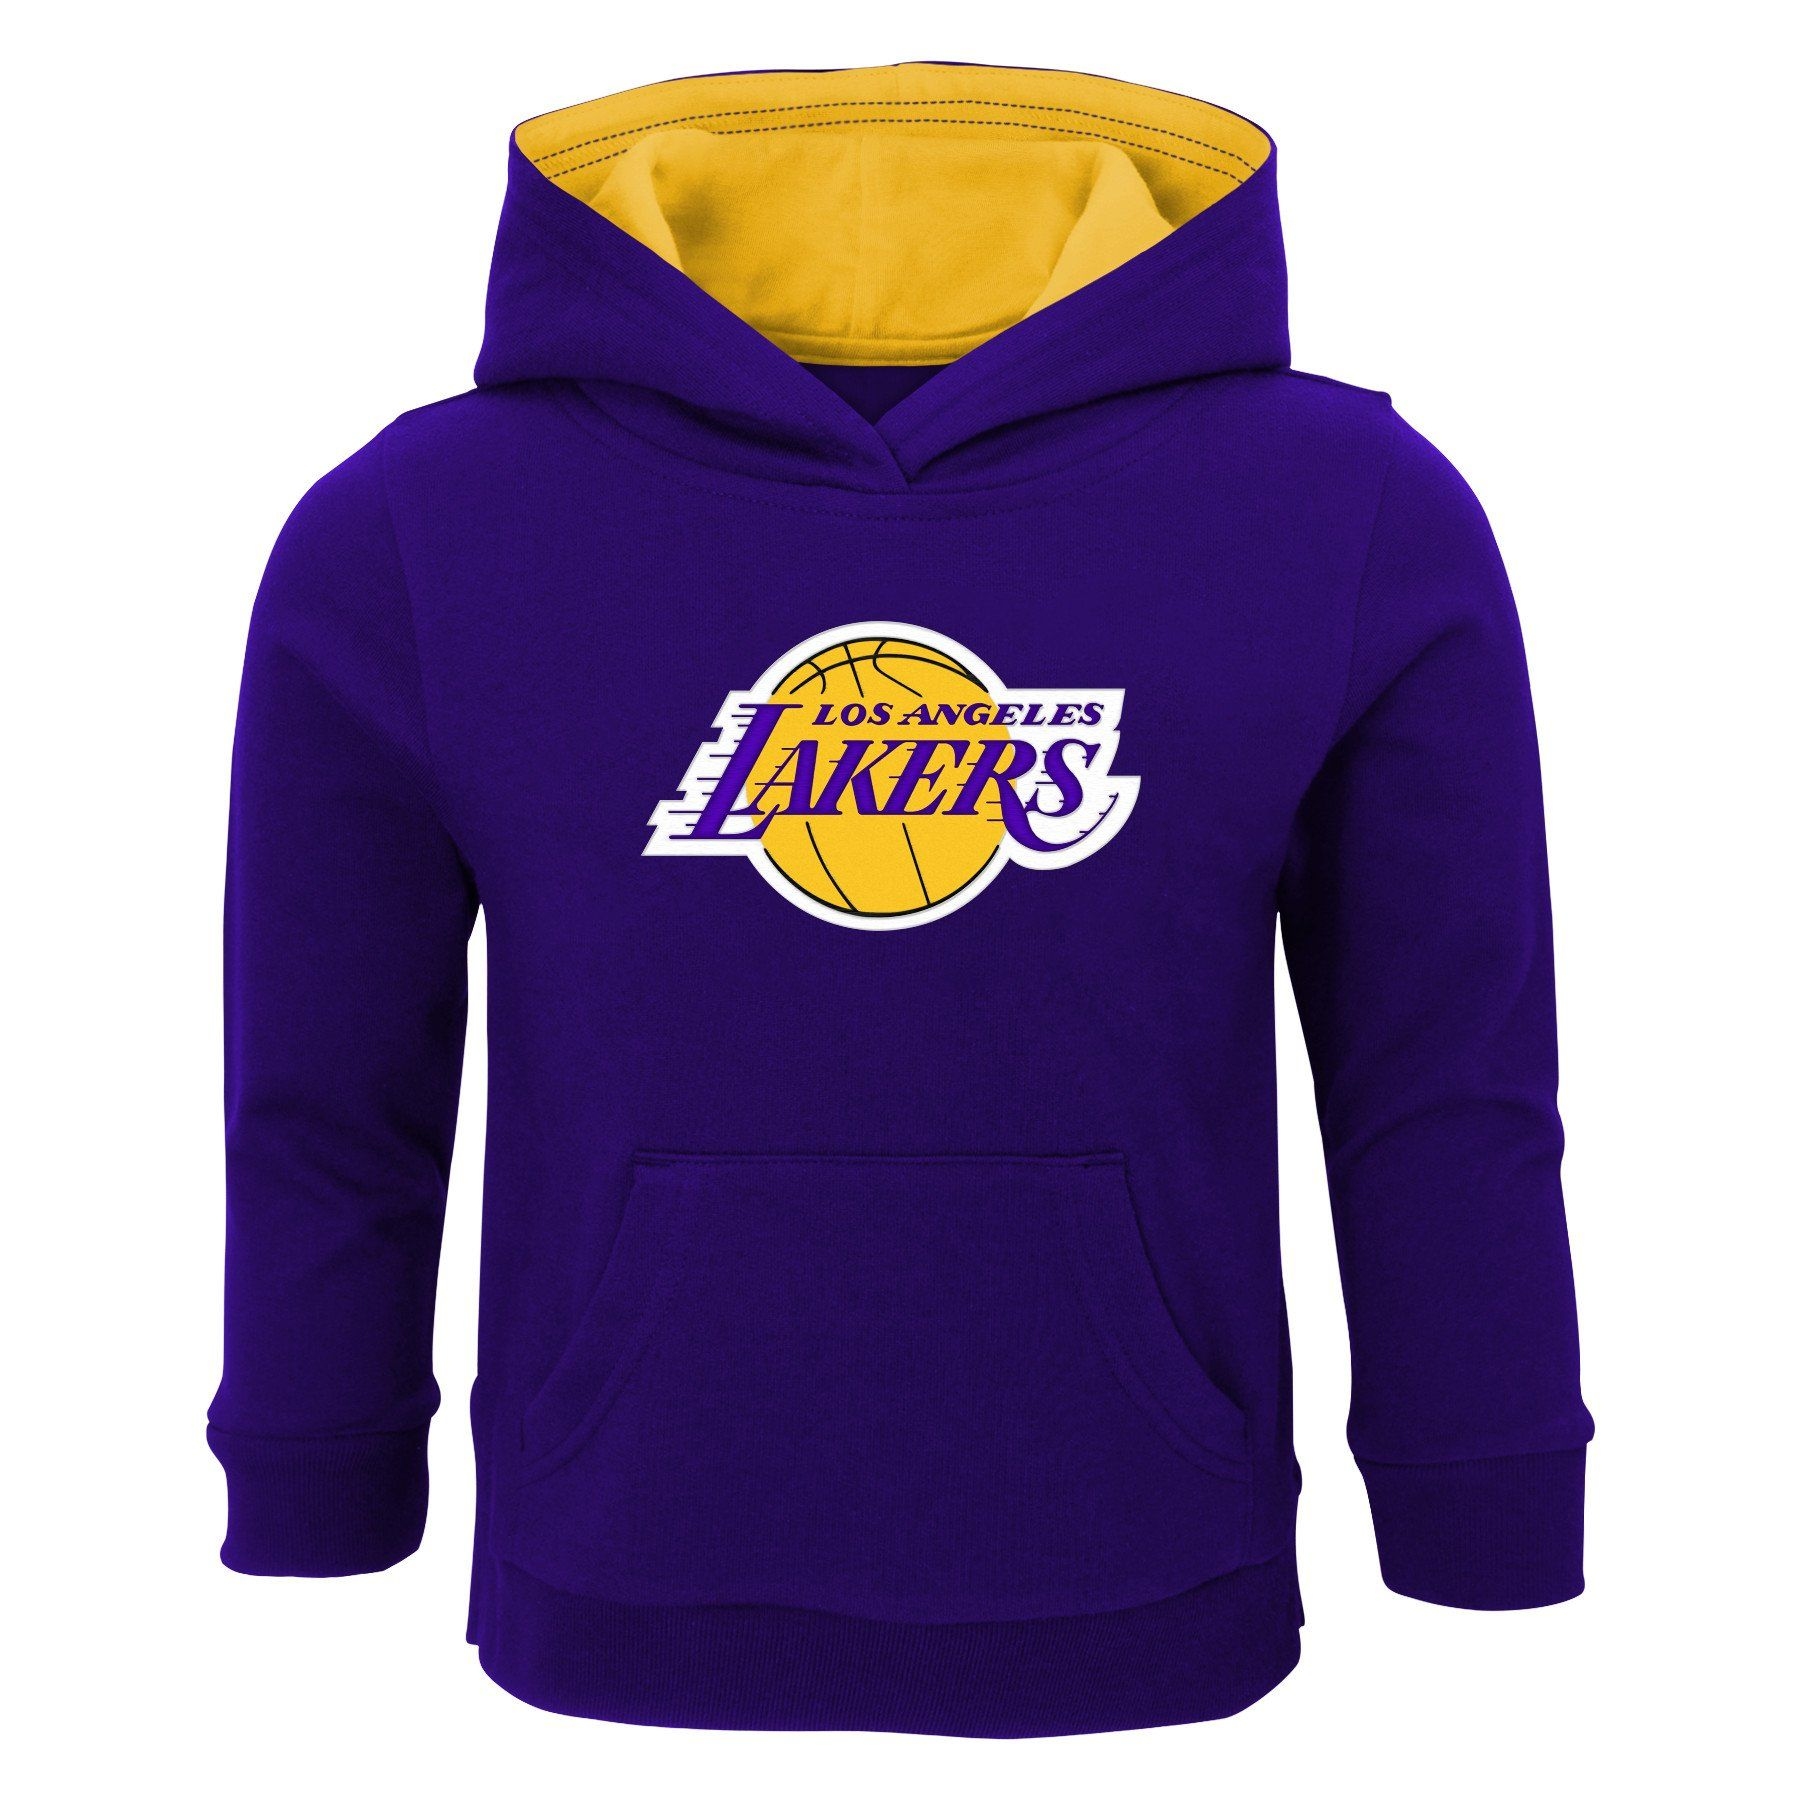 Lakers Pullover Sweatshirt With Hood Sweatshirts Pullover Sweatshirt Lakers